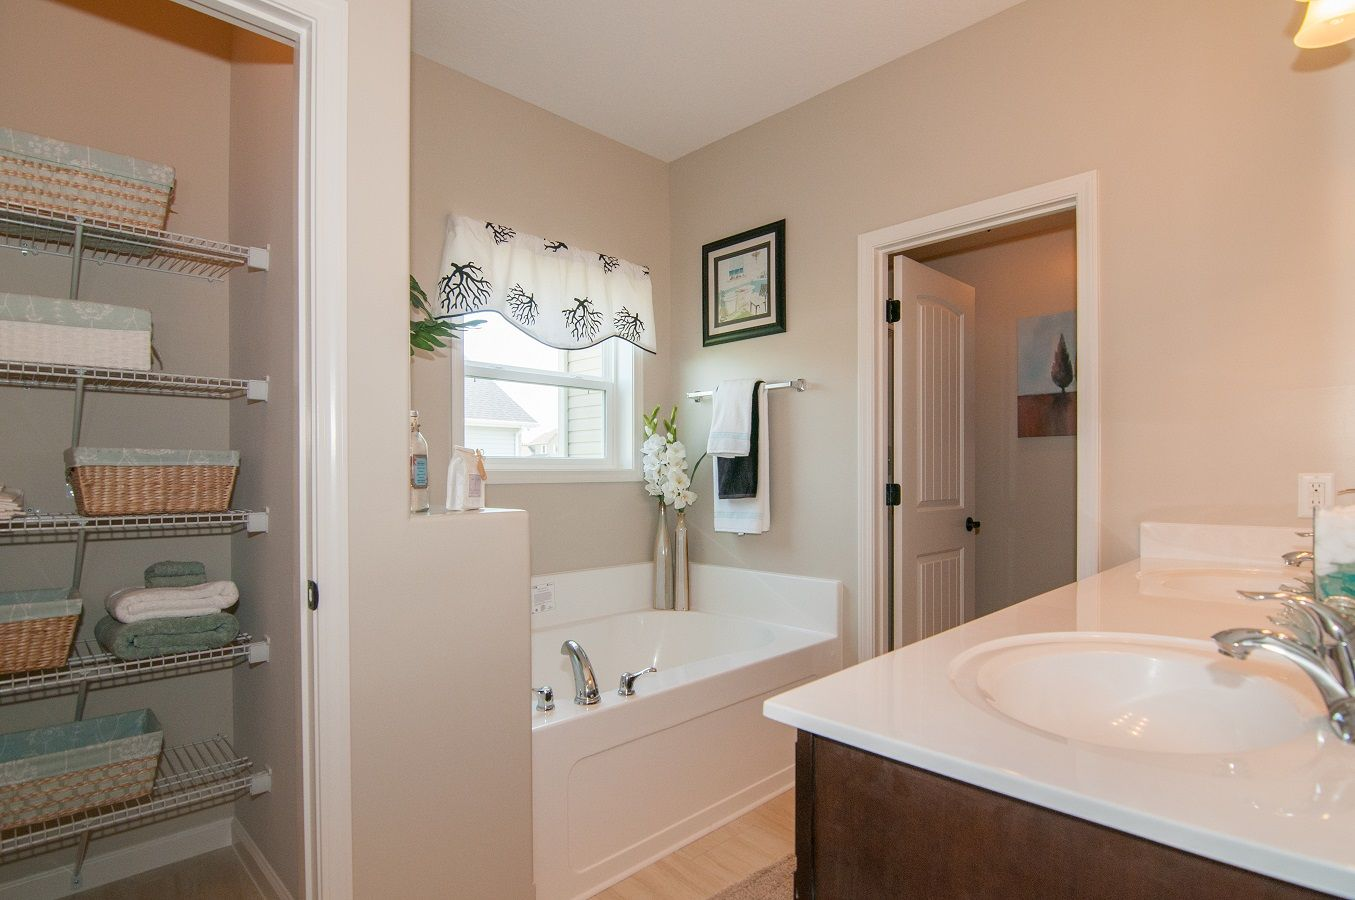 Bathroom featured in the Addison By D.R. Horton in Fort Wayne, IN